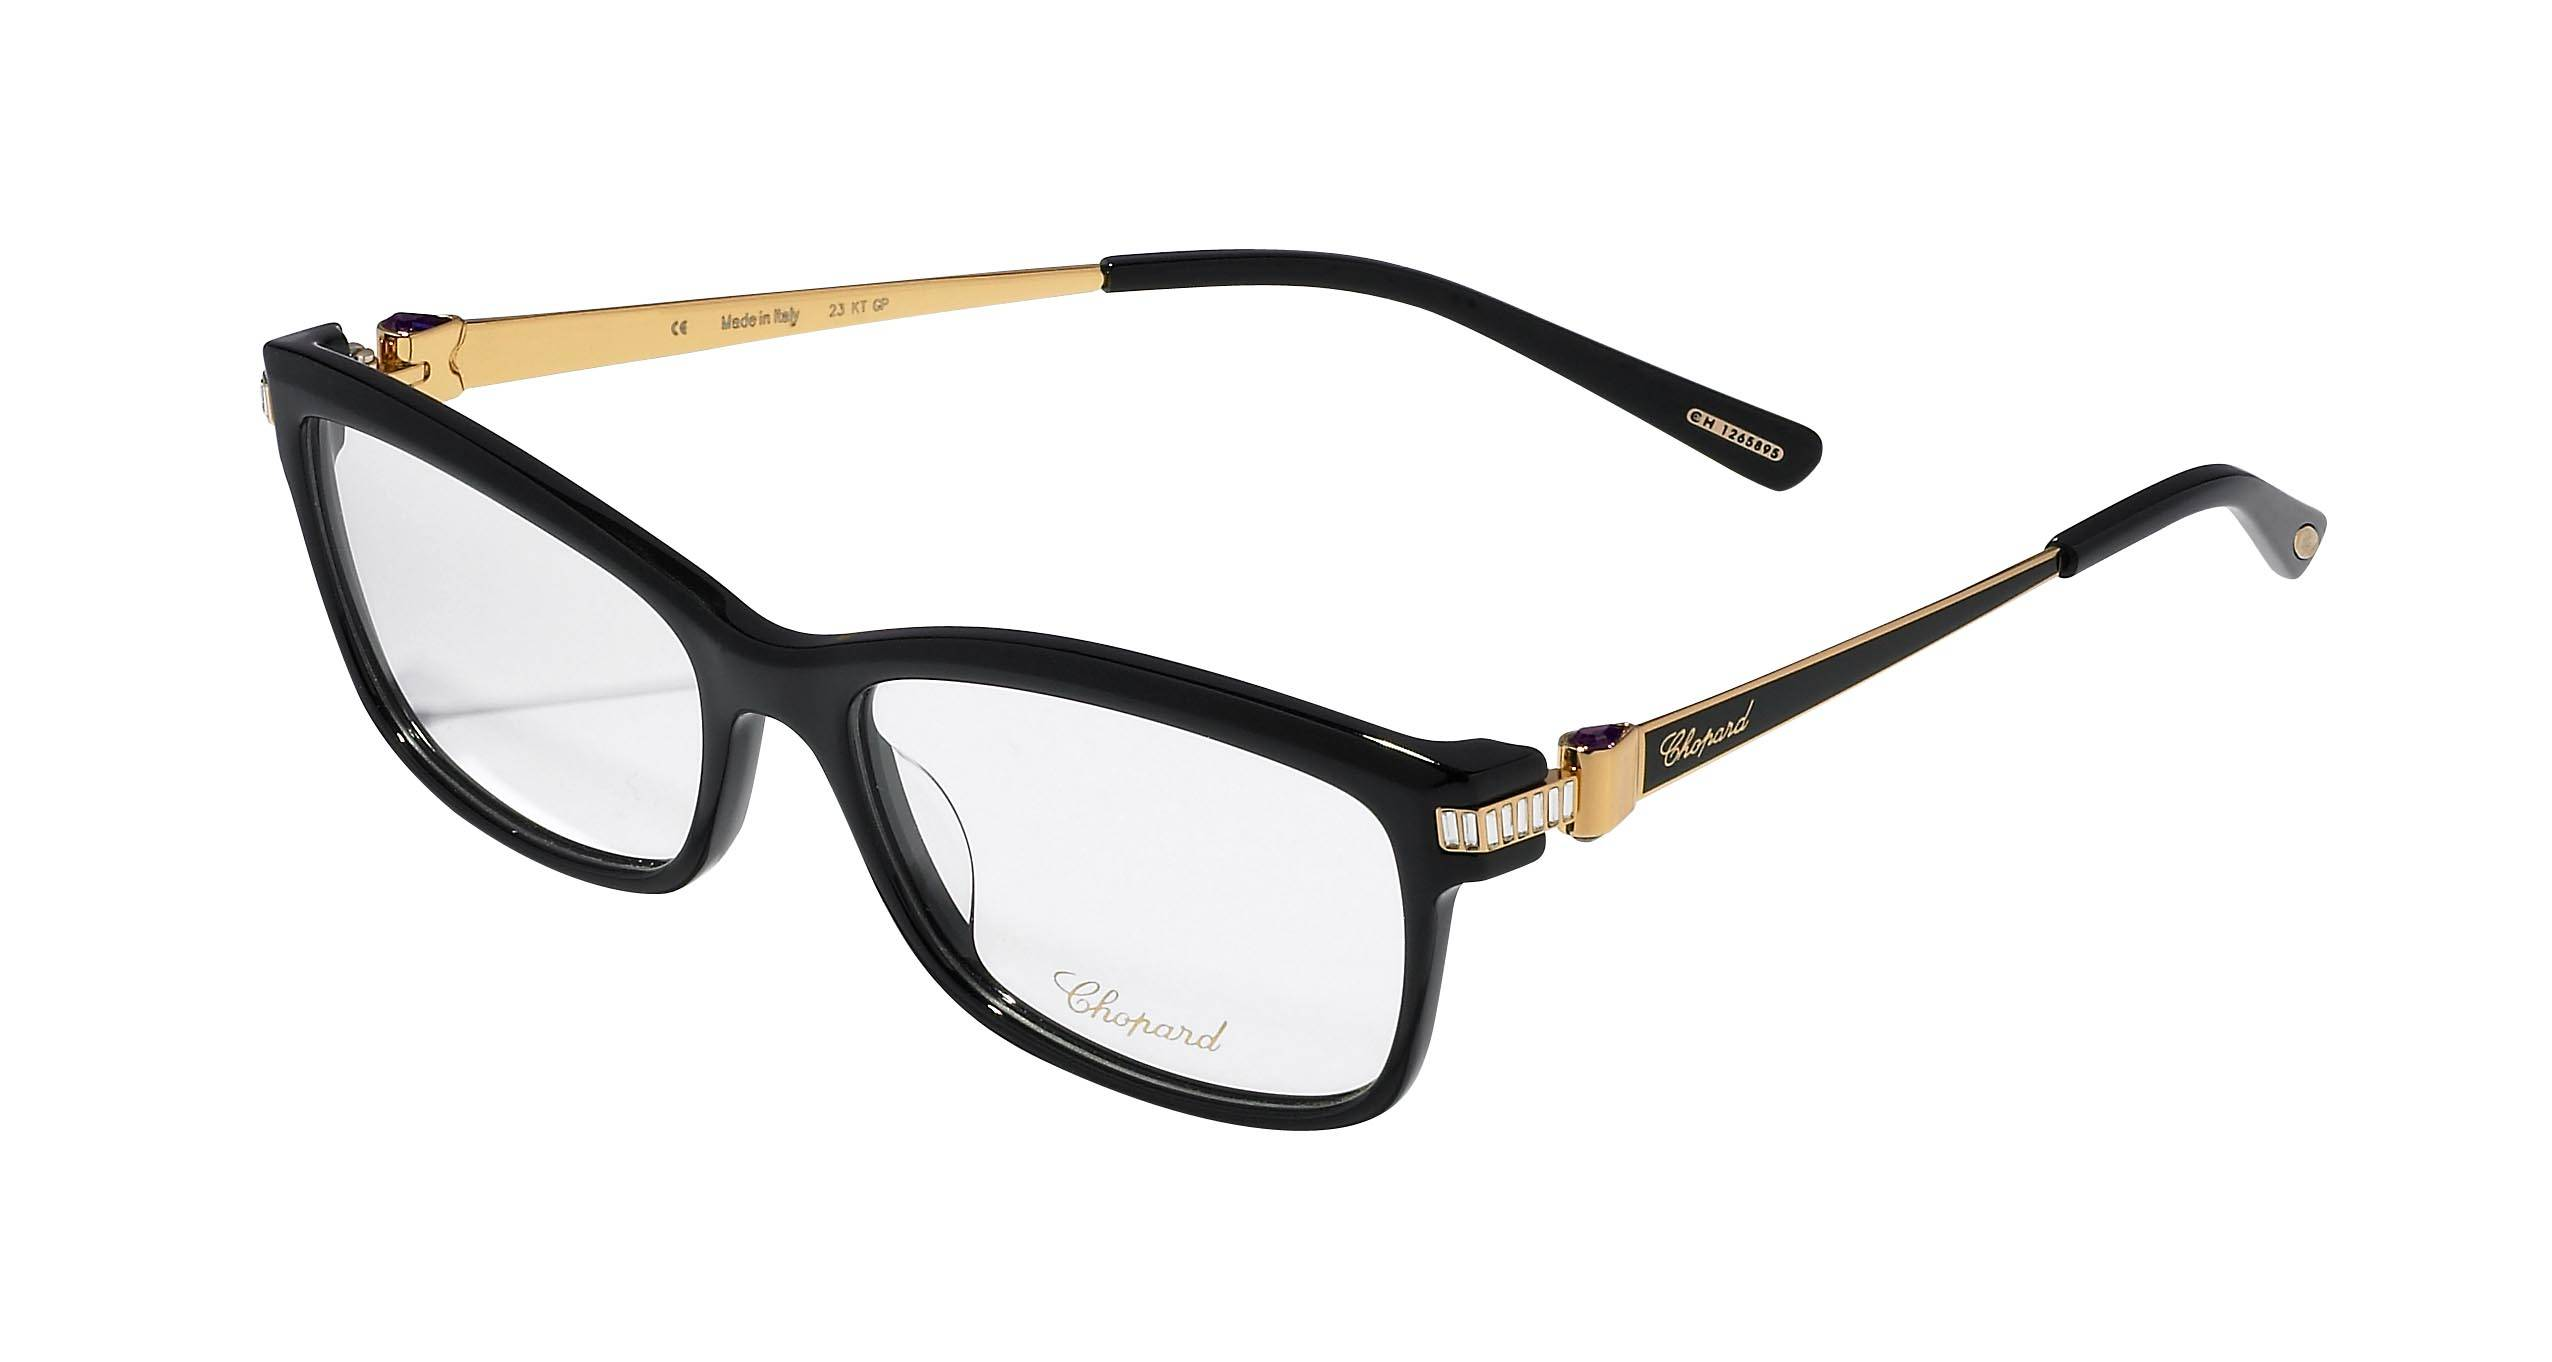 Designer Eyeglass Frames For Large Heads : Chopard Glasses in Hutton